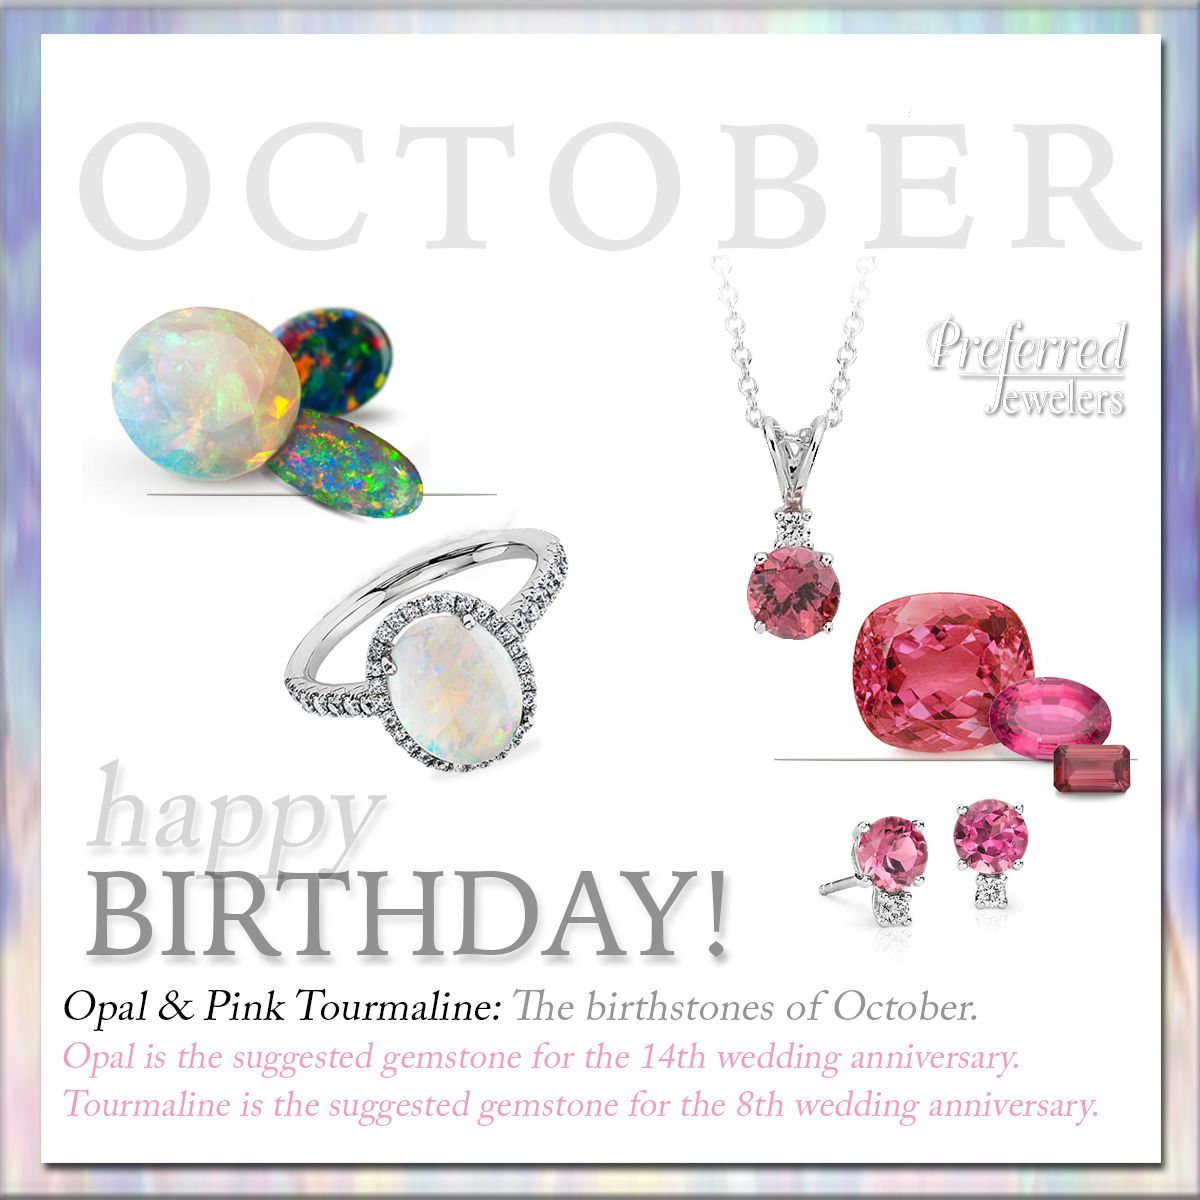 October has two beautiful birthstones, Opal and Pink